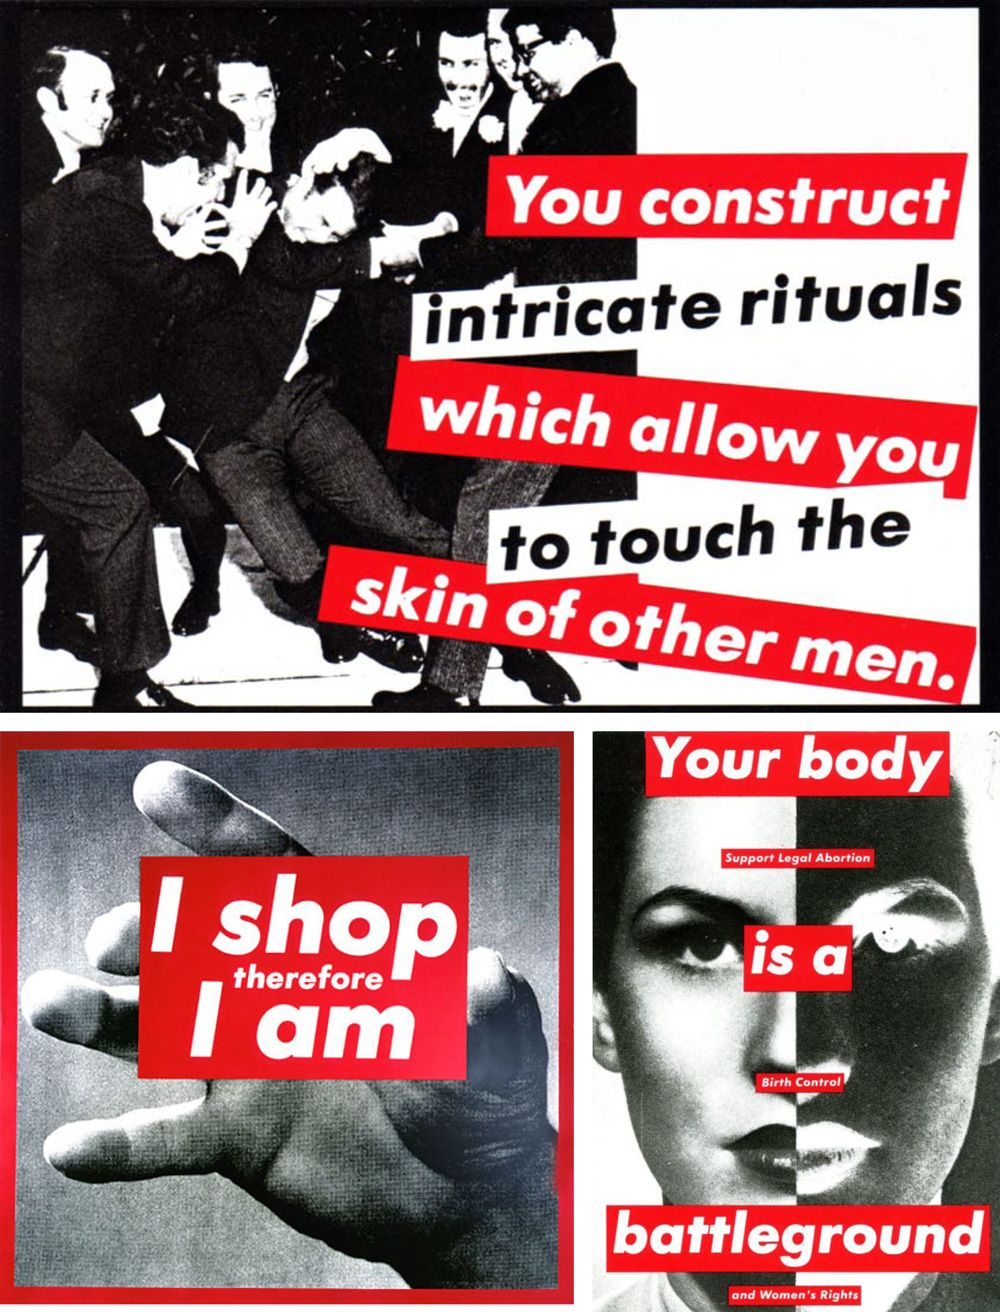 """Works by Barbara Kruger  Left: Untitled (""""You construct intricate rituals which allow you to touch the skin of other men""""), 1981 Center: Untitled (I shop therefore I am), 1987 Right: Untitled (Your body is a battleground), 1989"""